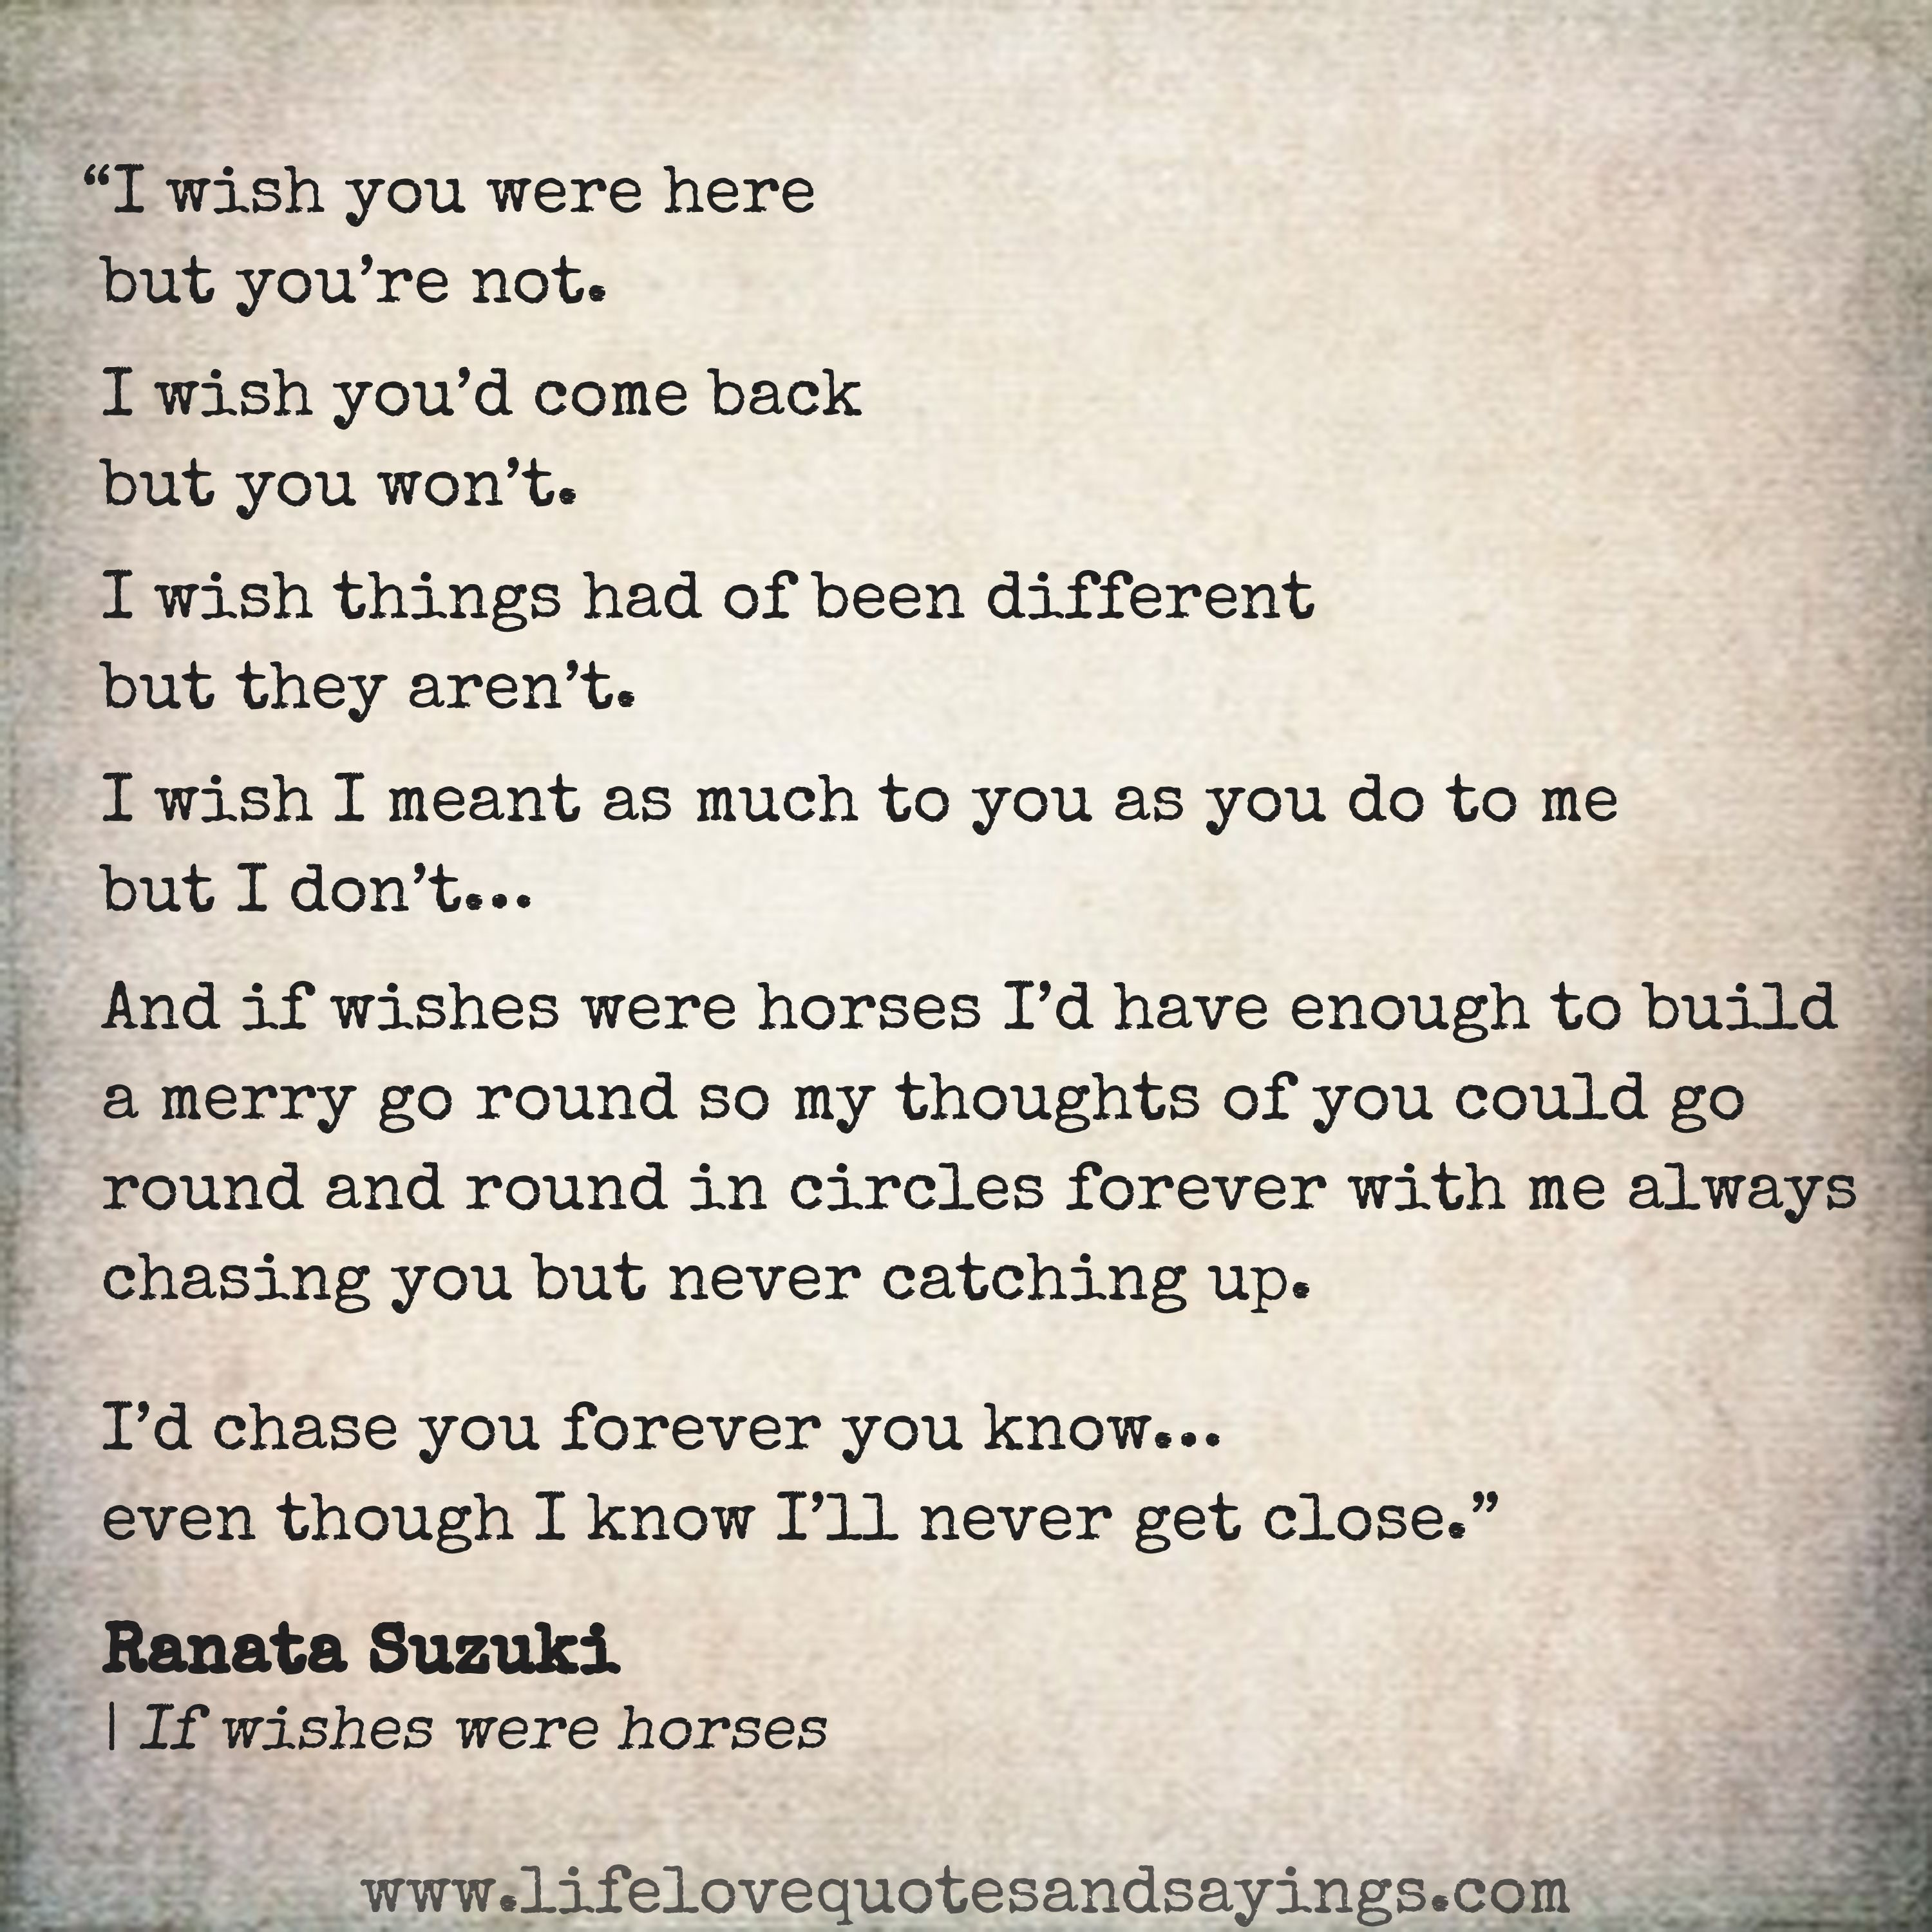 """Sad Tumblr Quotes About Love: """"And If Wishes Were Horses I'd Have Enough To Build A"""